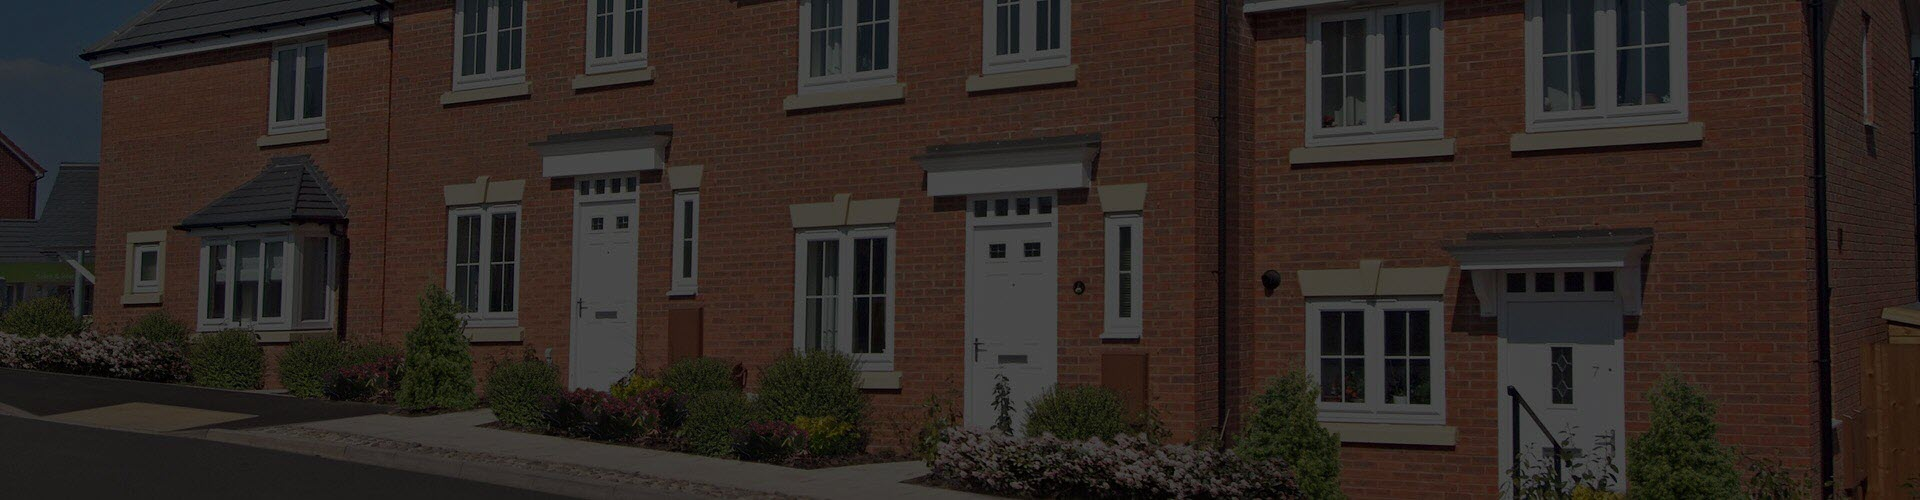 Residential-Property-Valuations-Warrington, Cheshire